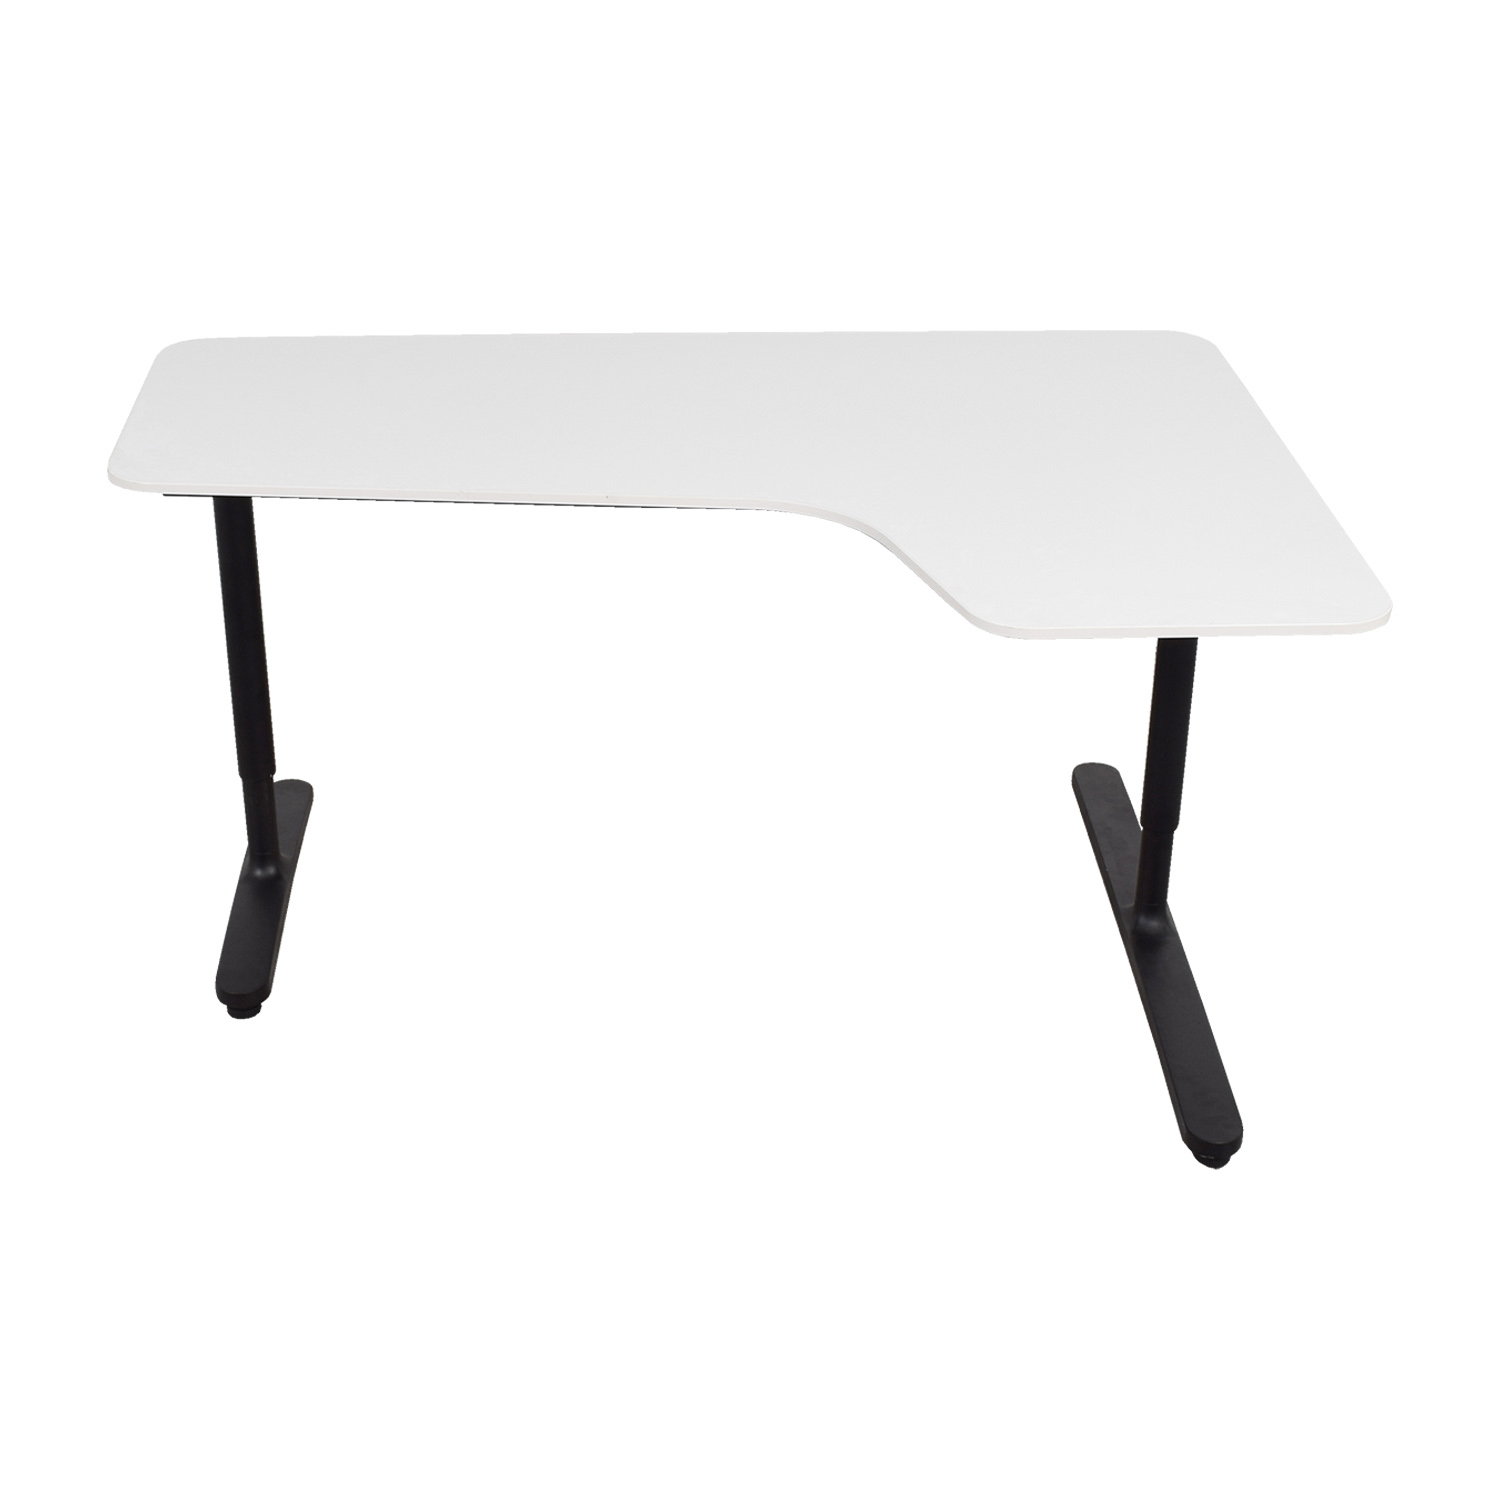 off ikea bekant white right corner desk tables used accent table end for small rooms waterproof garden furniture covers bath and beyond salt lamp low metal coffee nightstand